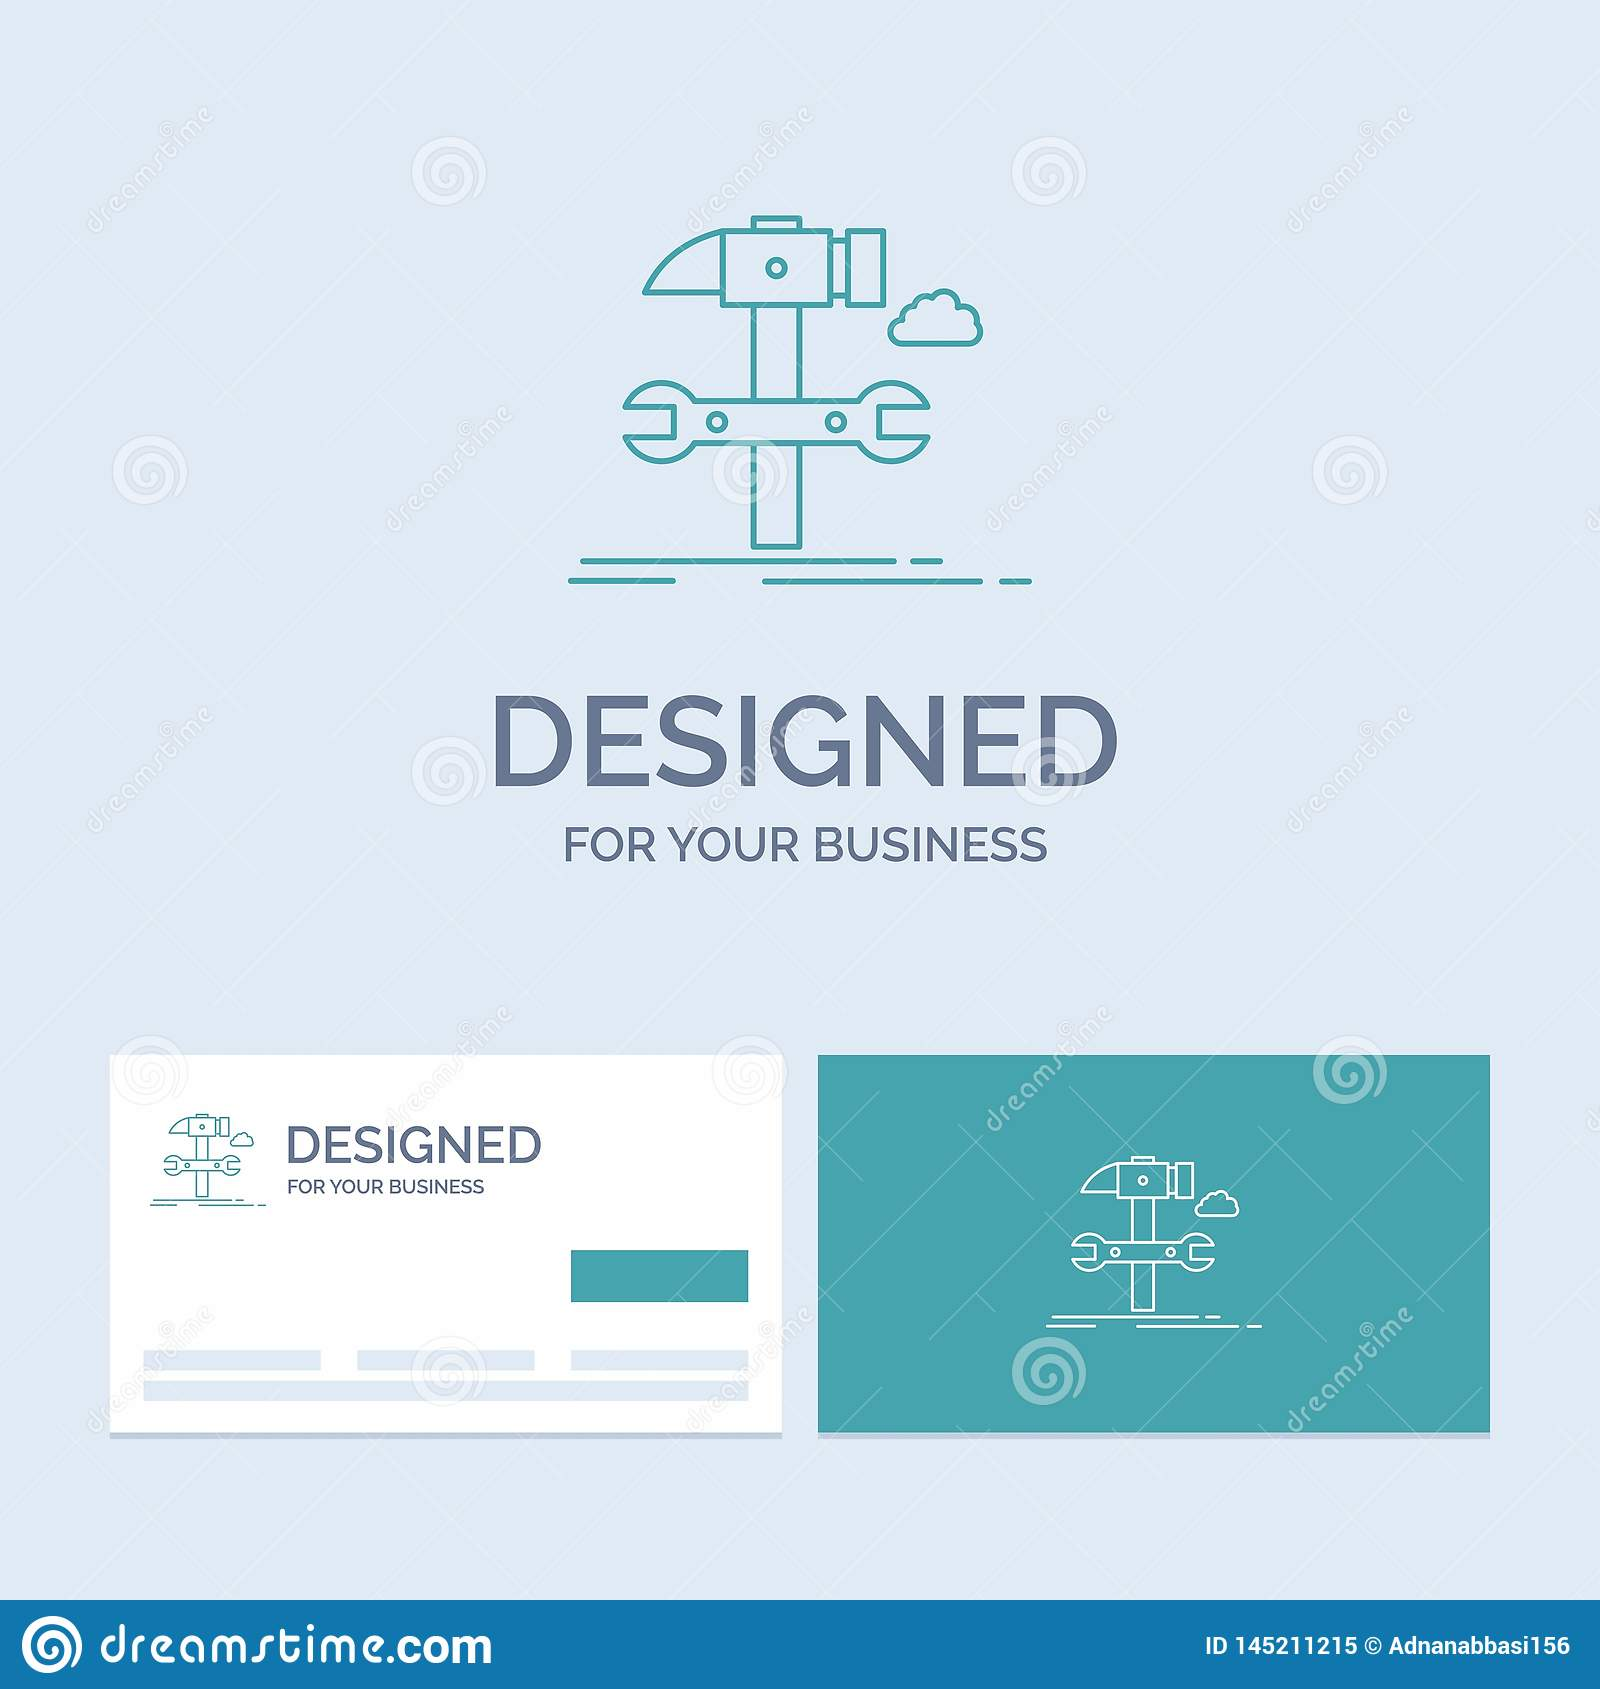 Build, engineering, hammer, repair, service Business Logo Line Icon Symbol for your business. Turquoise Business Cards with Brand